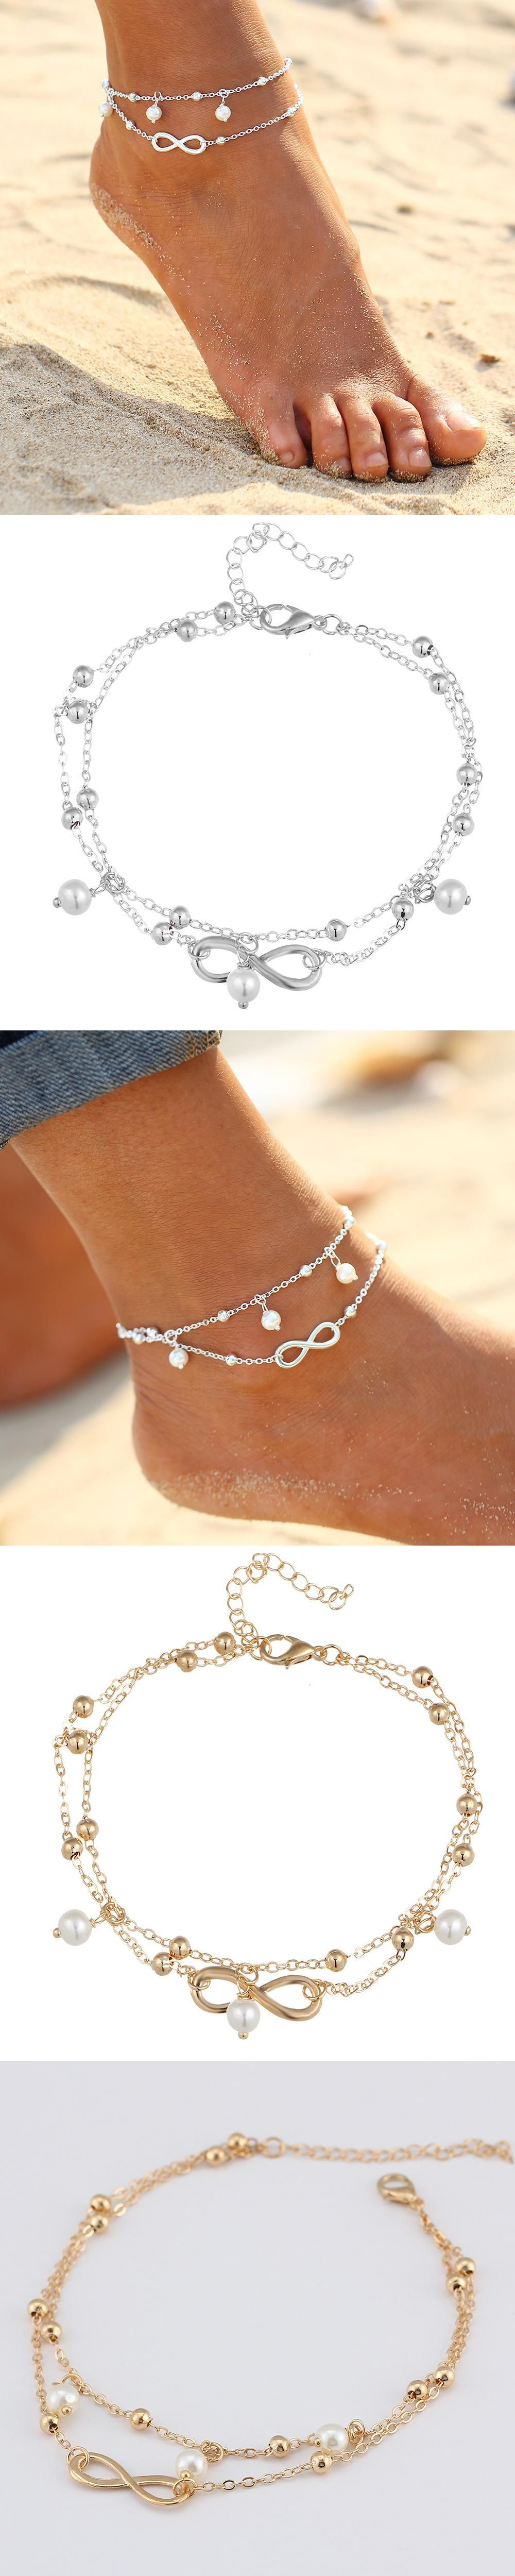 woman dream women anklet for tattoo caymancode tattoos designs catcher